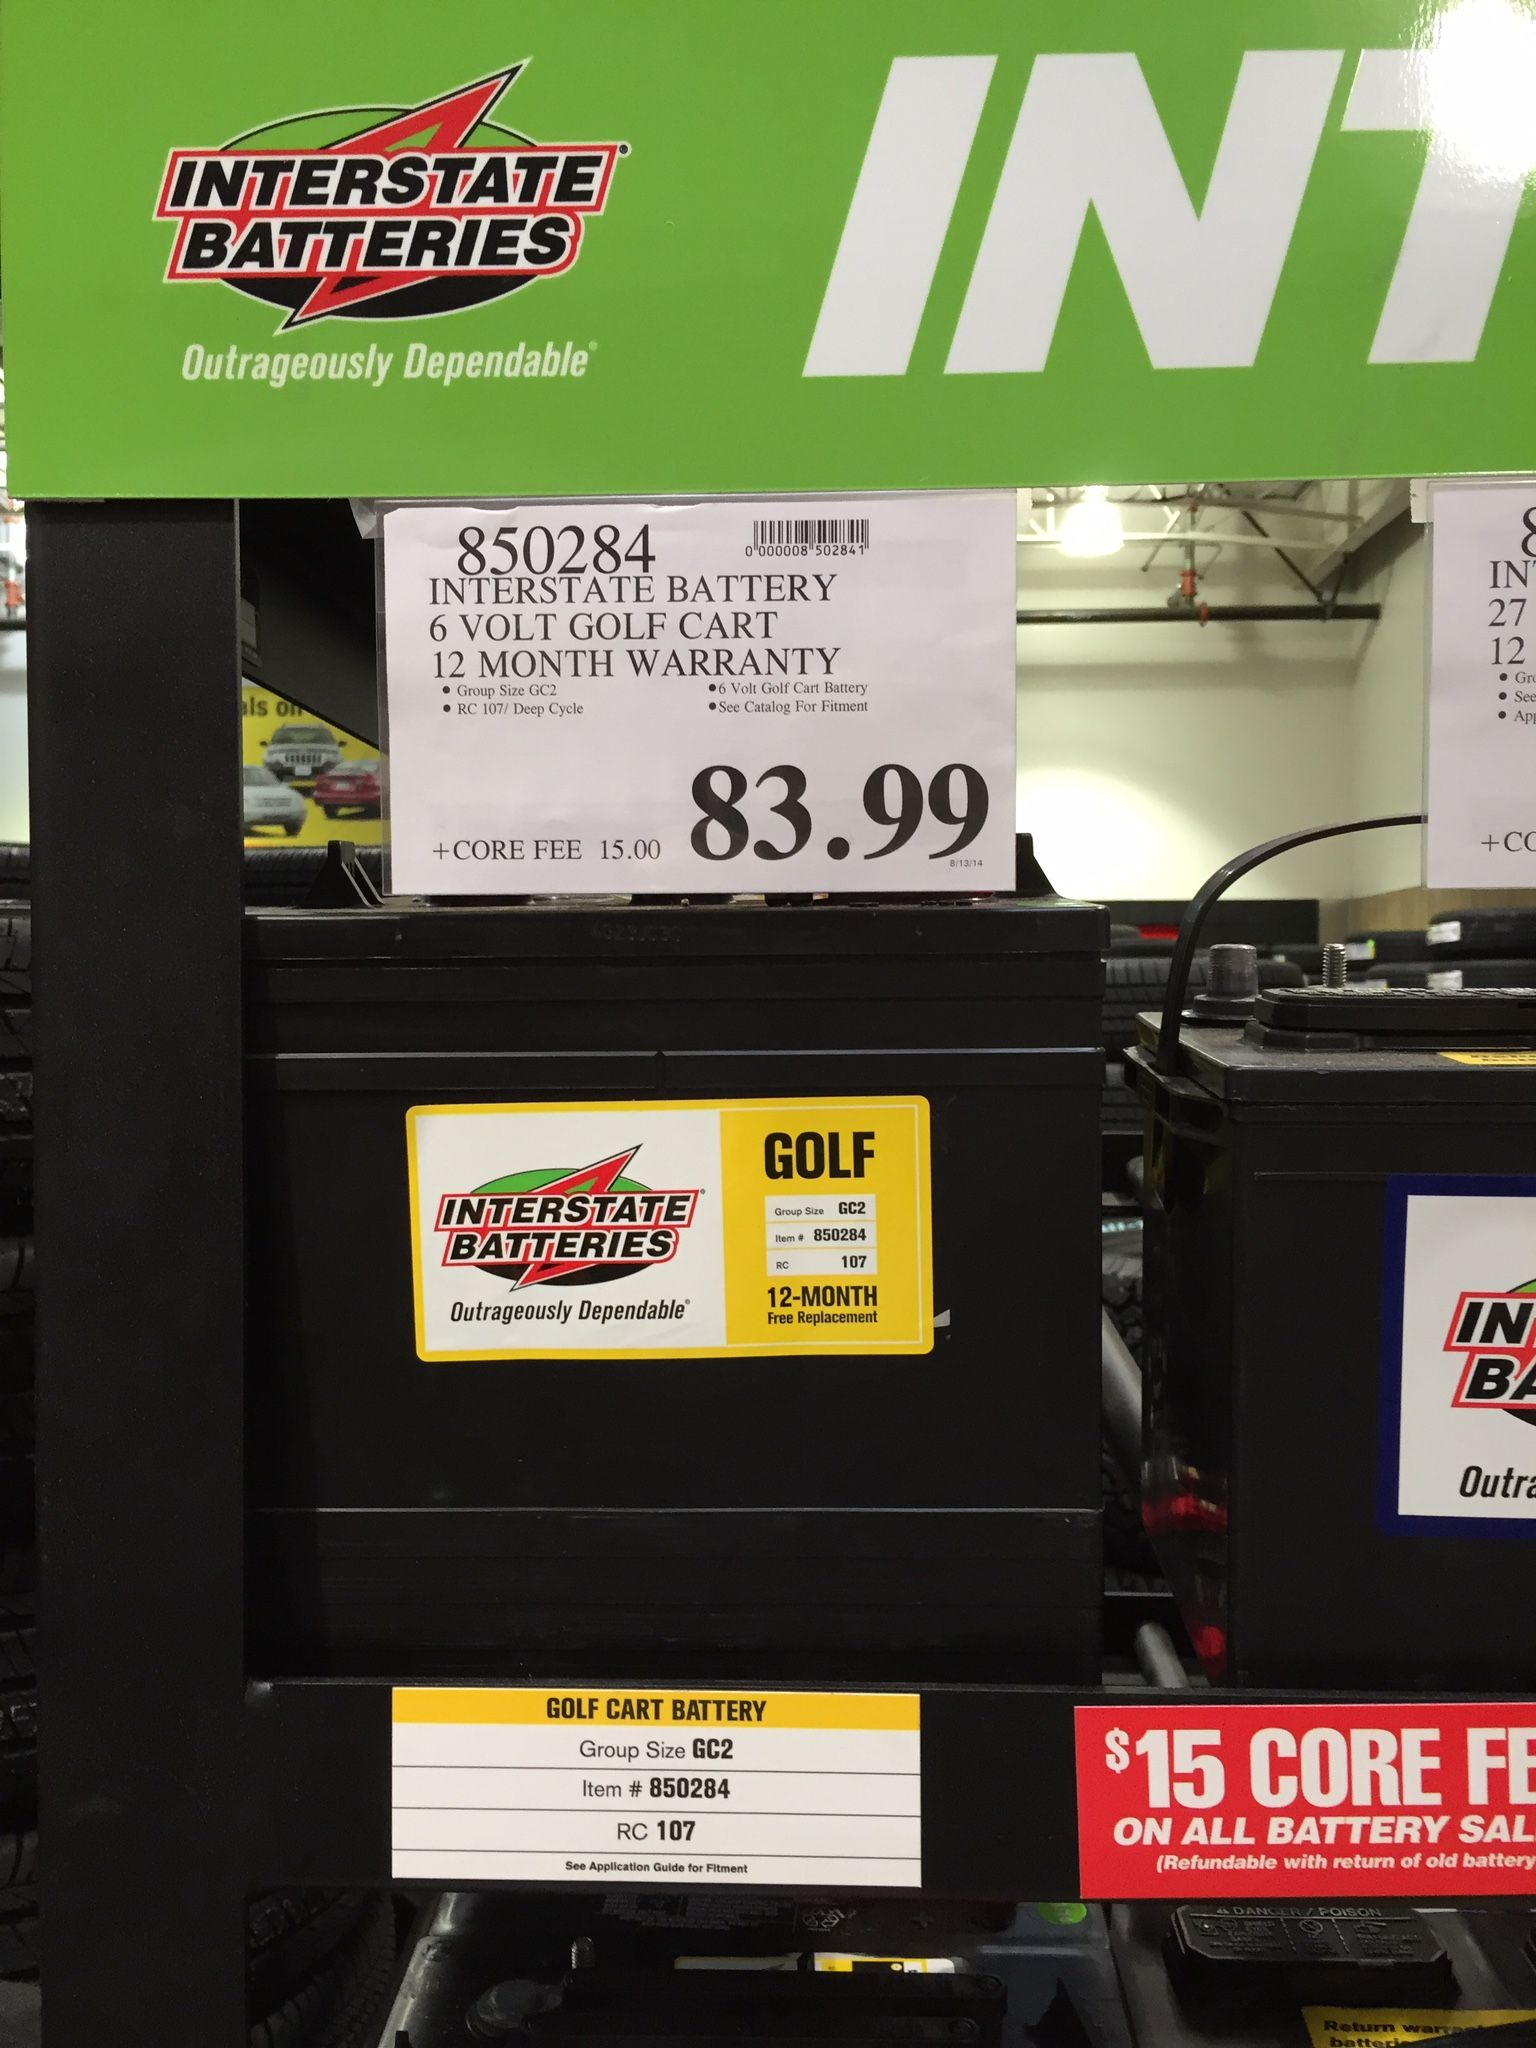 6 volt golf cart batteries from Costco for solar bank